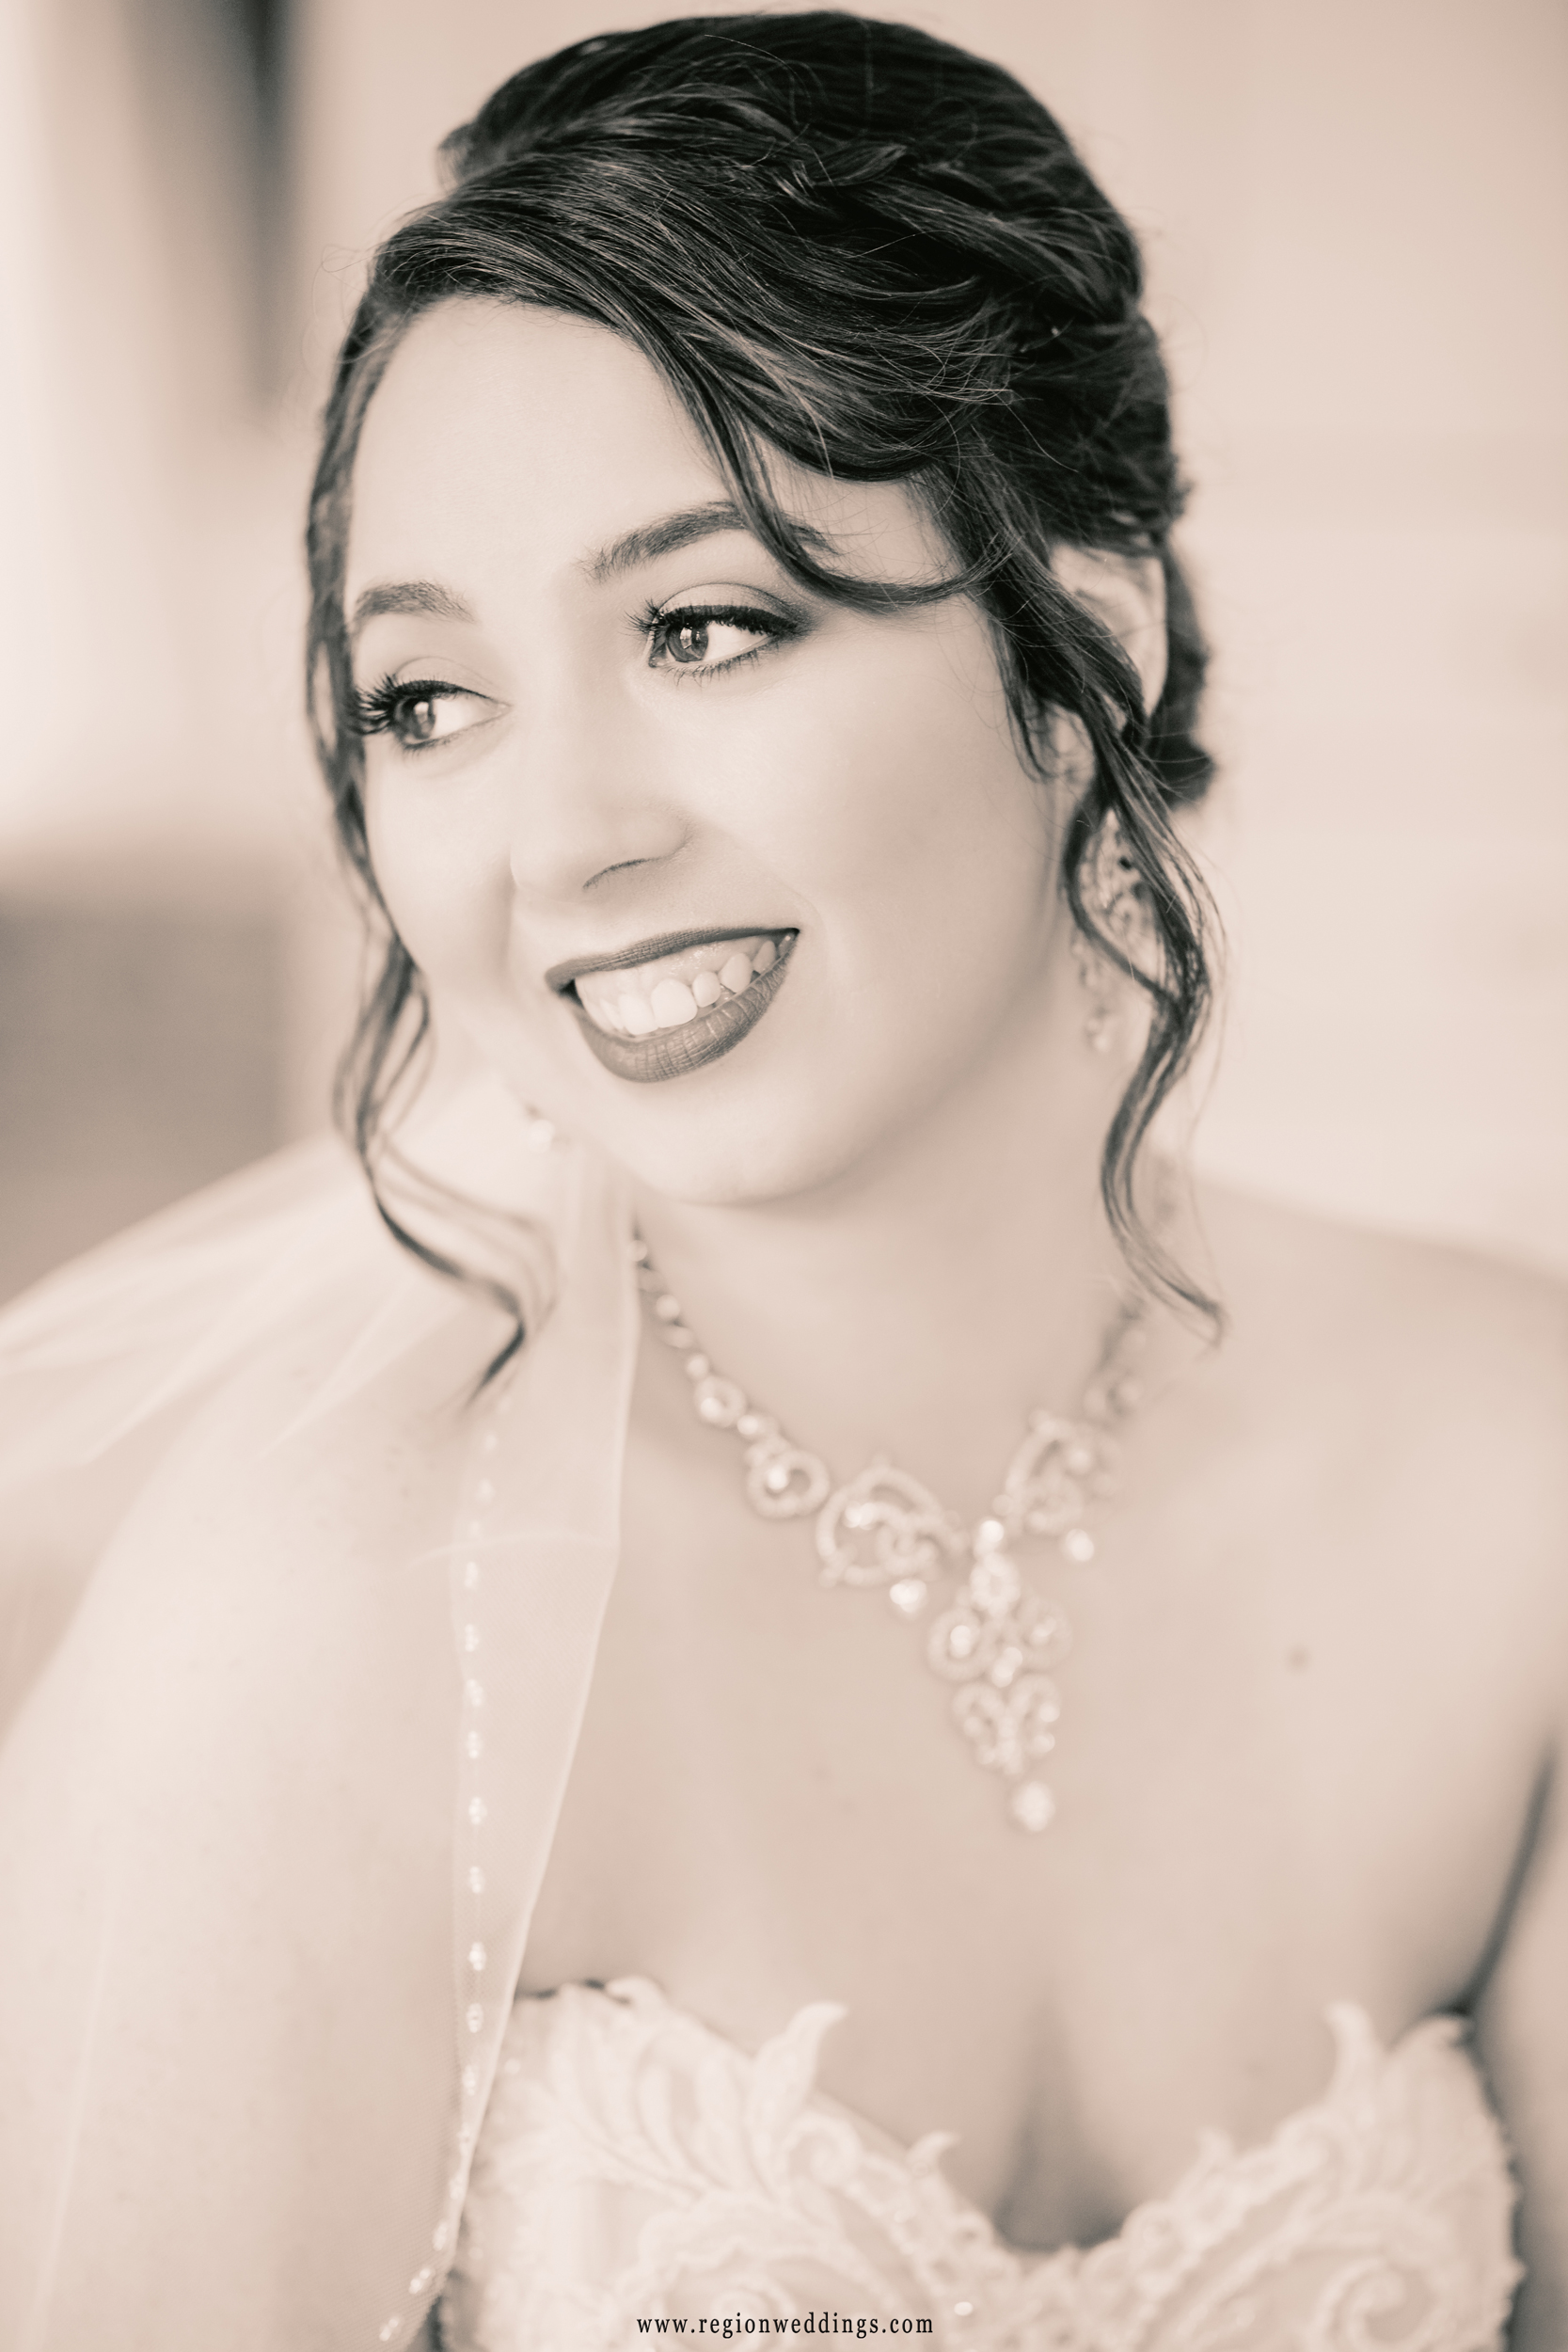 The beautiful bride on her big day in the bridal suite at Lighthouse Restaurant.